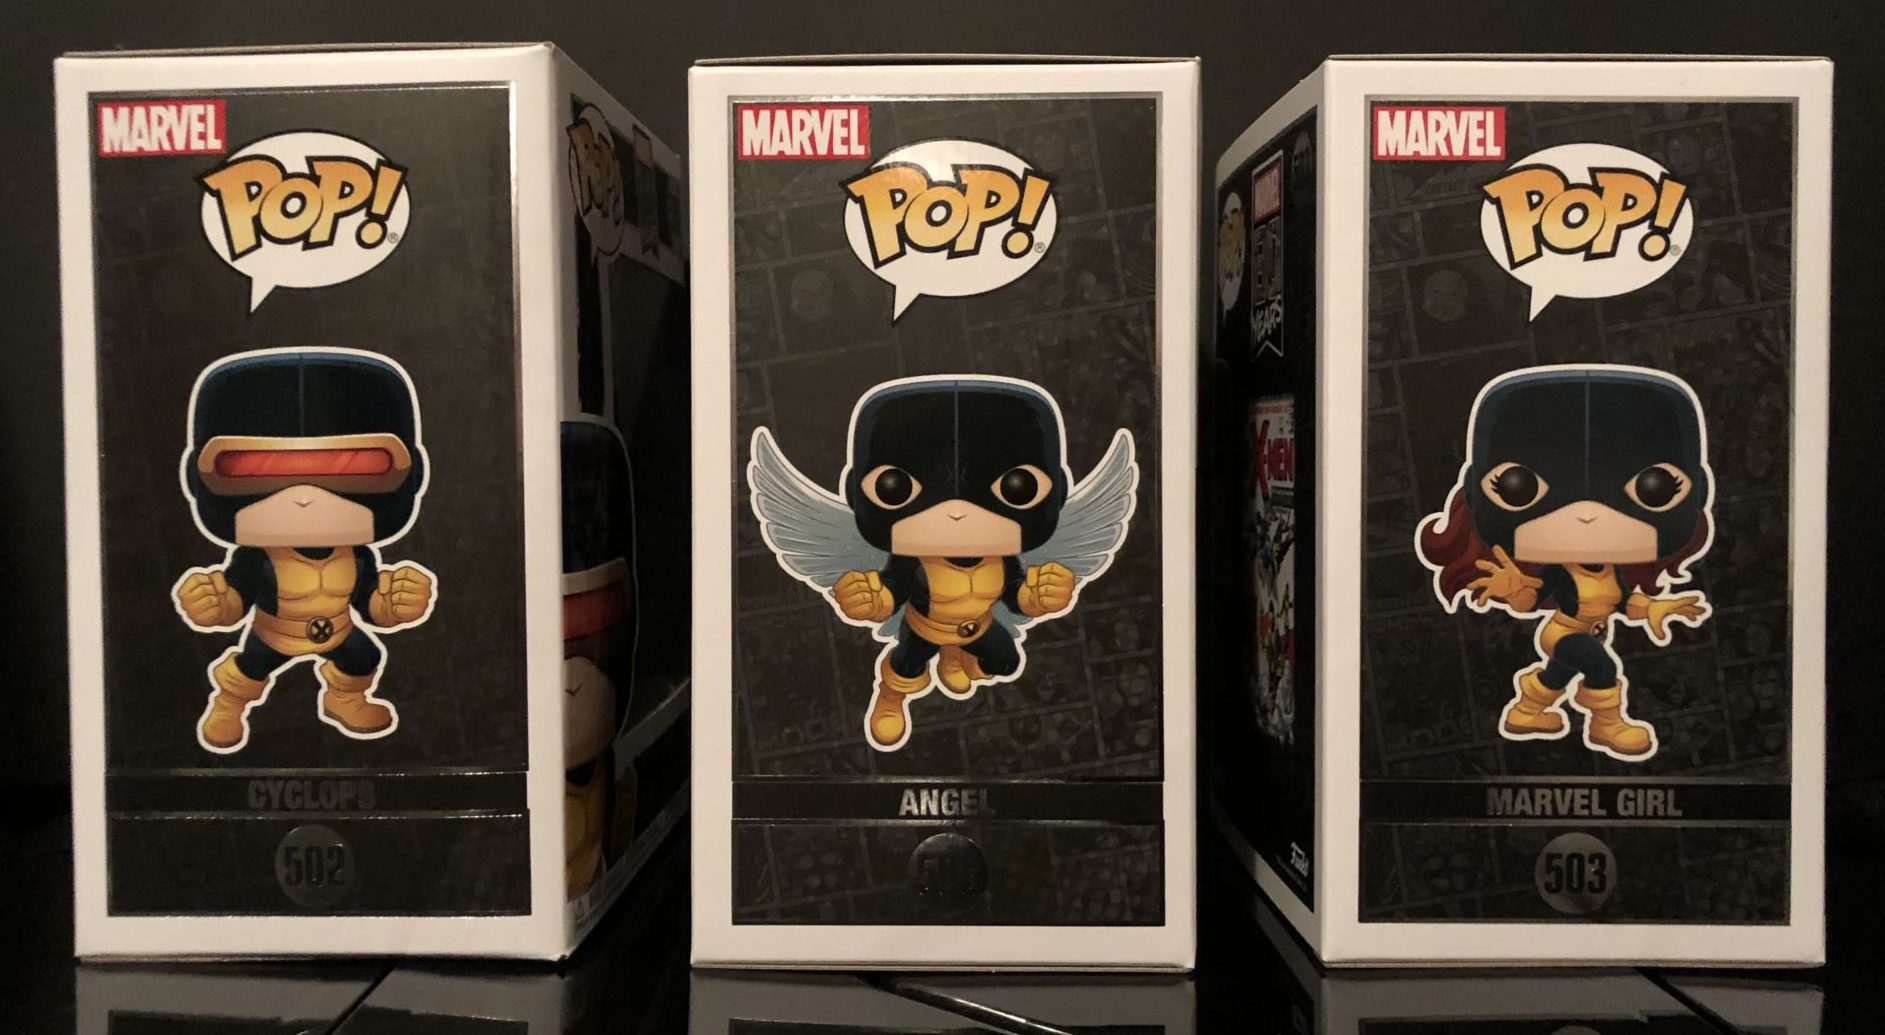 To Me, My X-Men, With Marvel 80 Years Funko Pops! [Review]